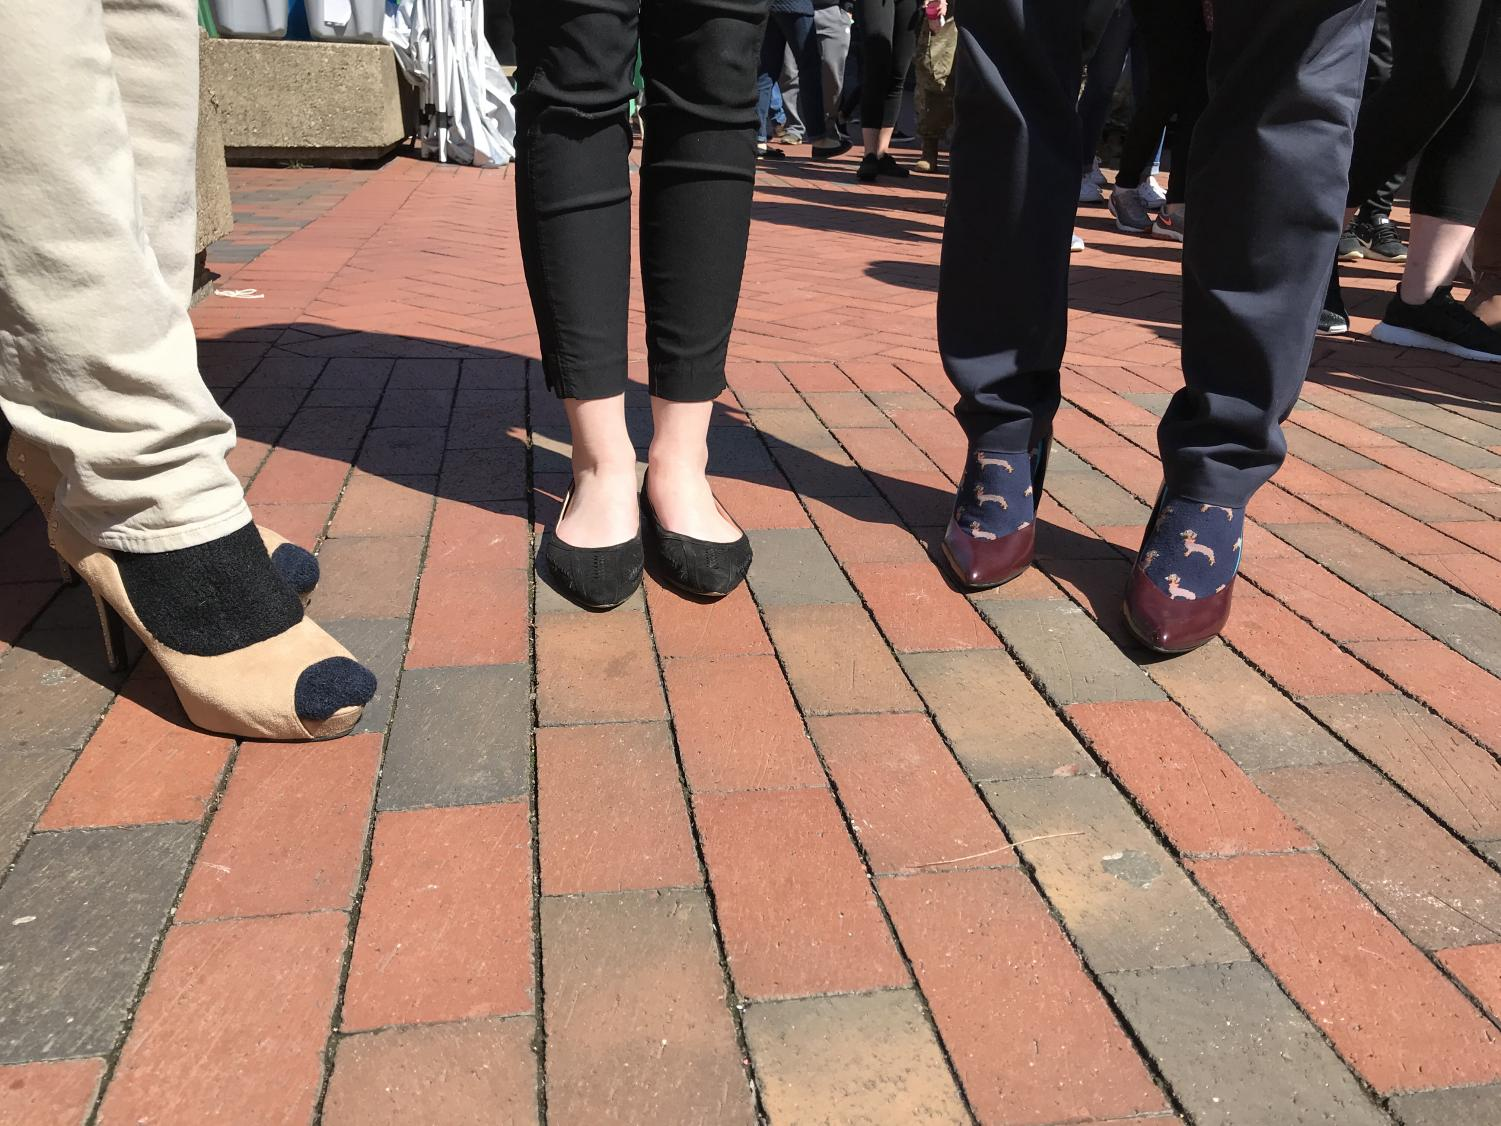 SGA President Matt Jarvis (Left), SGA Vice President-Elect Hannah Petracca (Middle) and Assistant Dean of Student Affairs Matt James show off their footwear for Walk a Mile in Her Shoes Thursday.